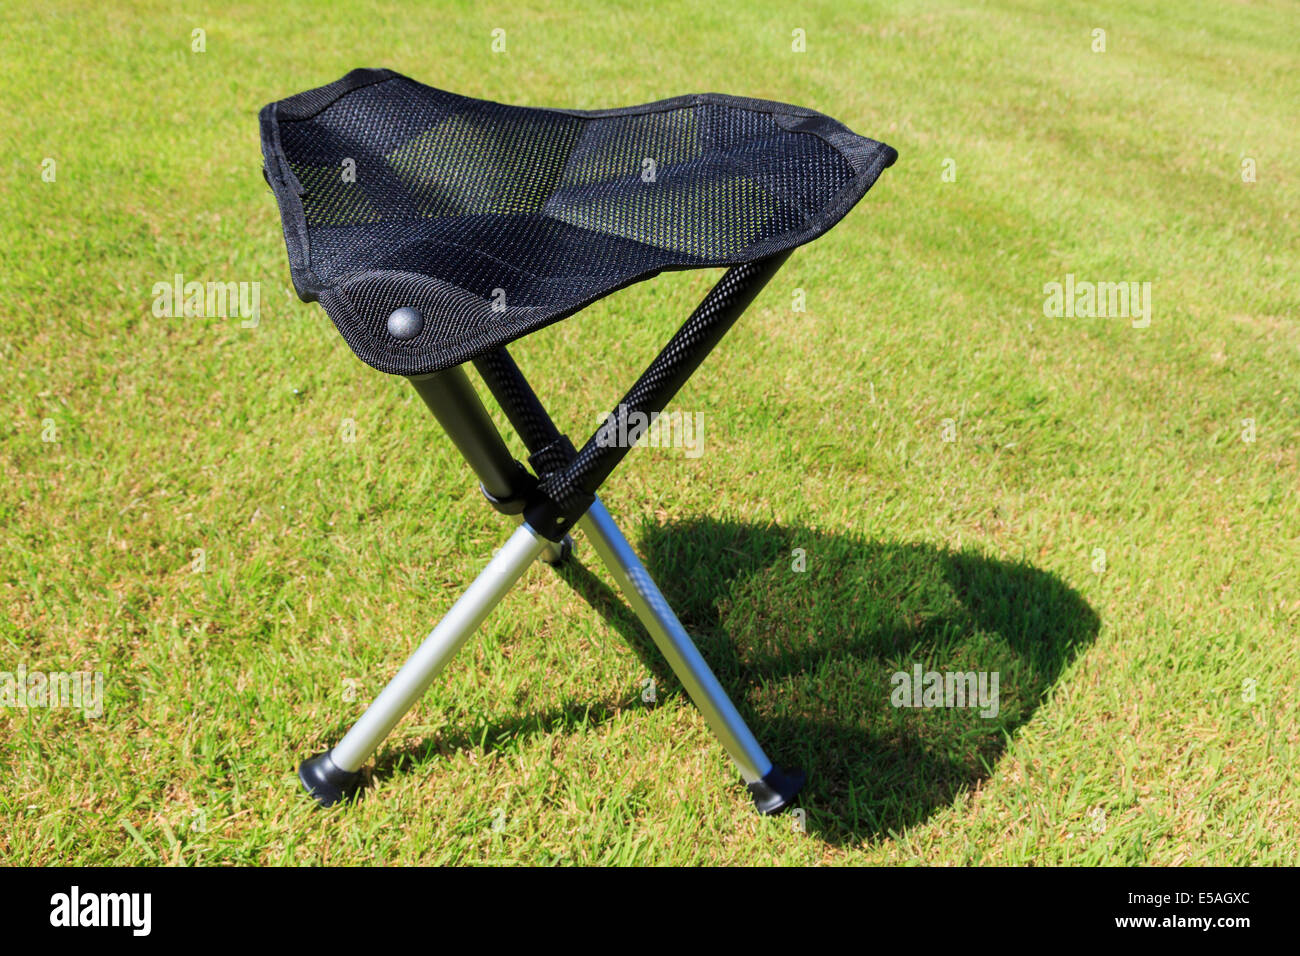 Folding Portable Three Legged Tripod Camping Stool With A